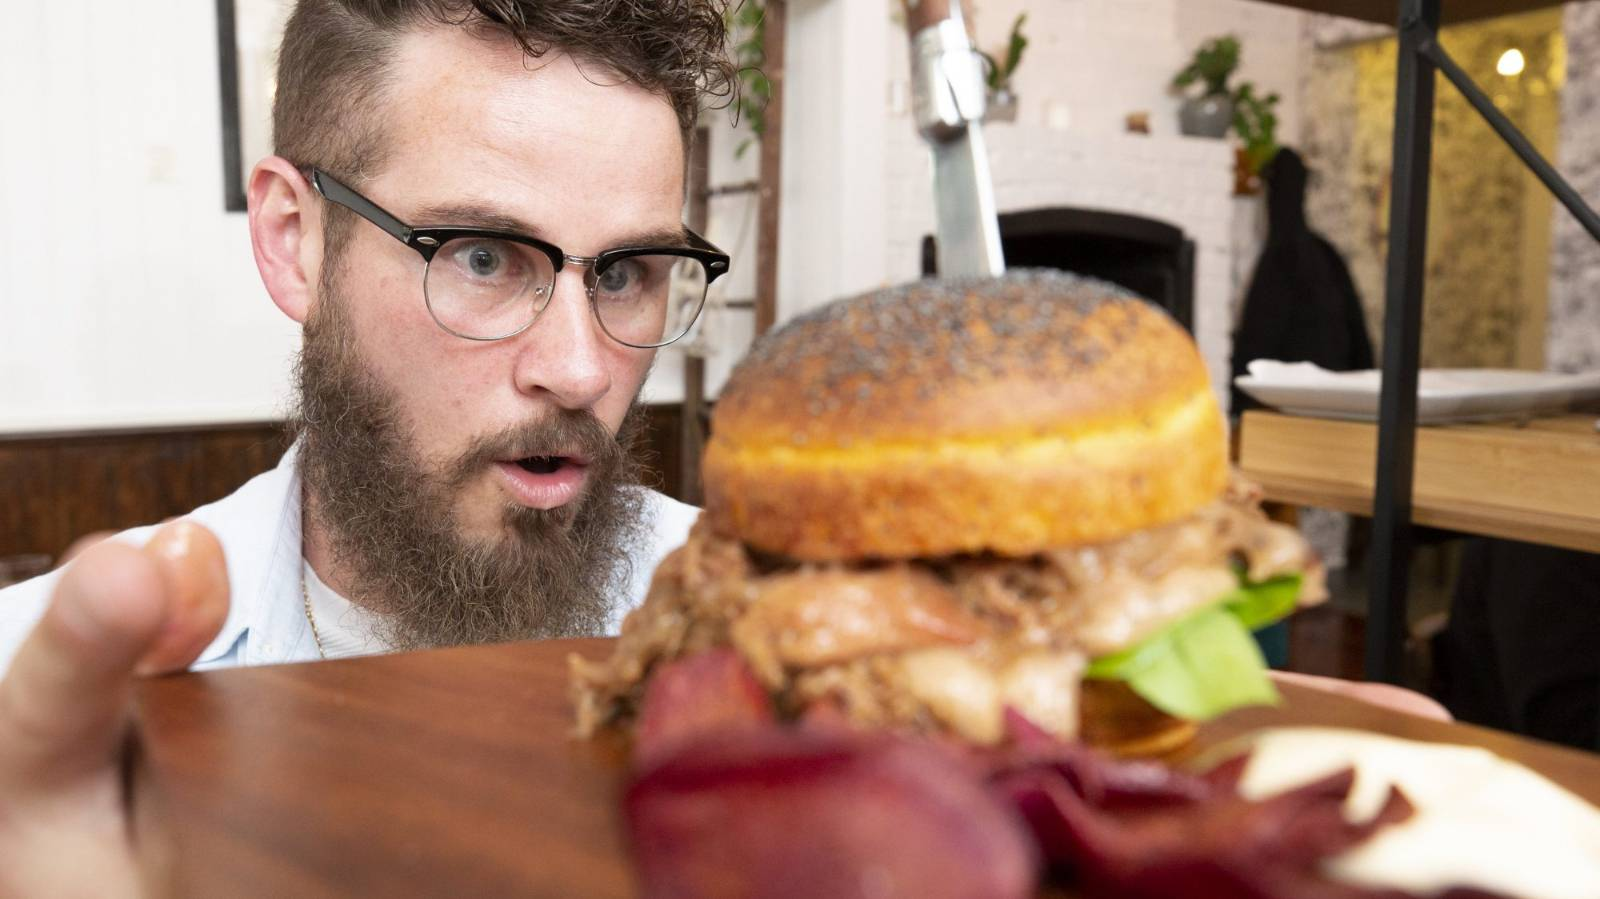 One man's mission to smash 86 burgers in 19 days